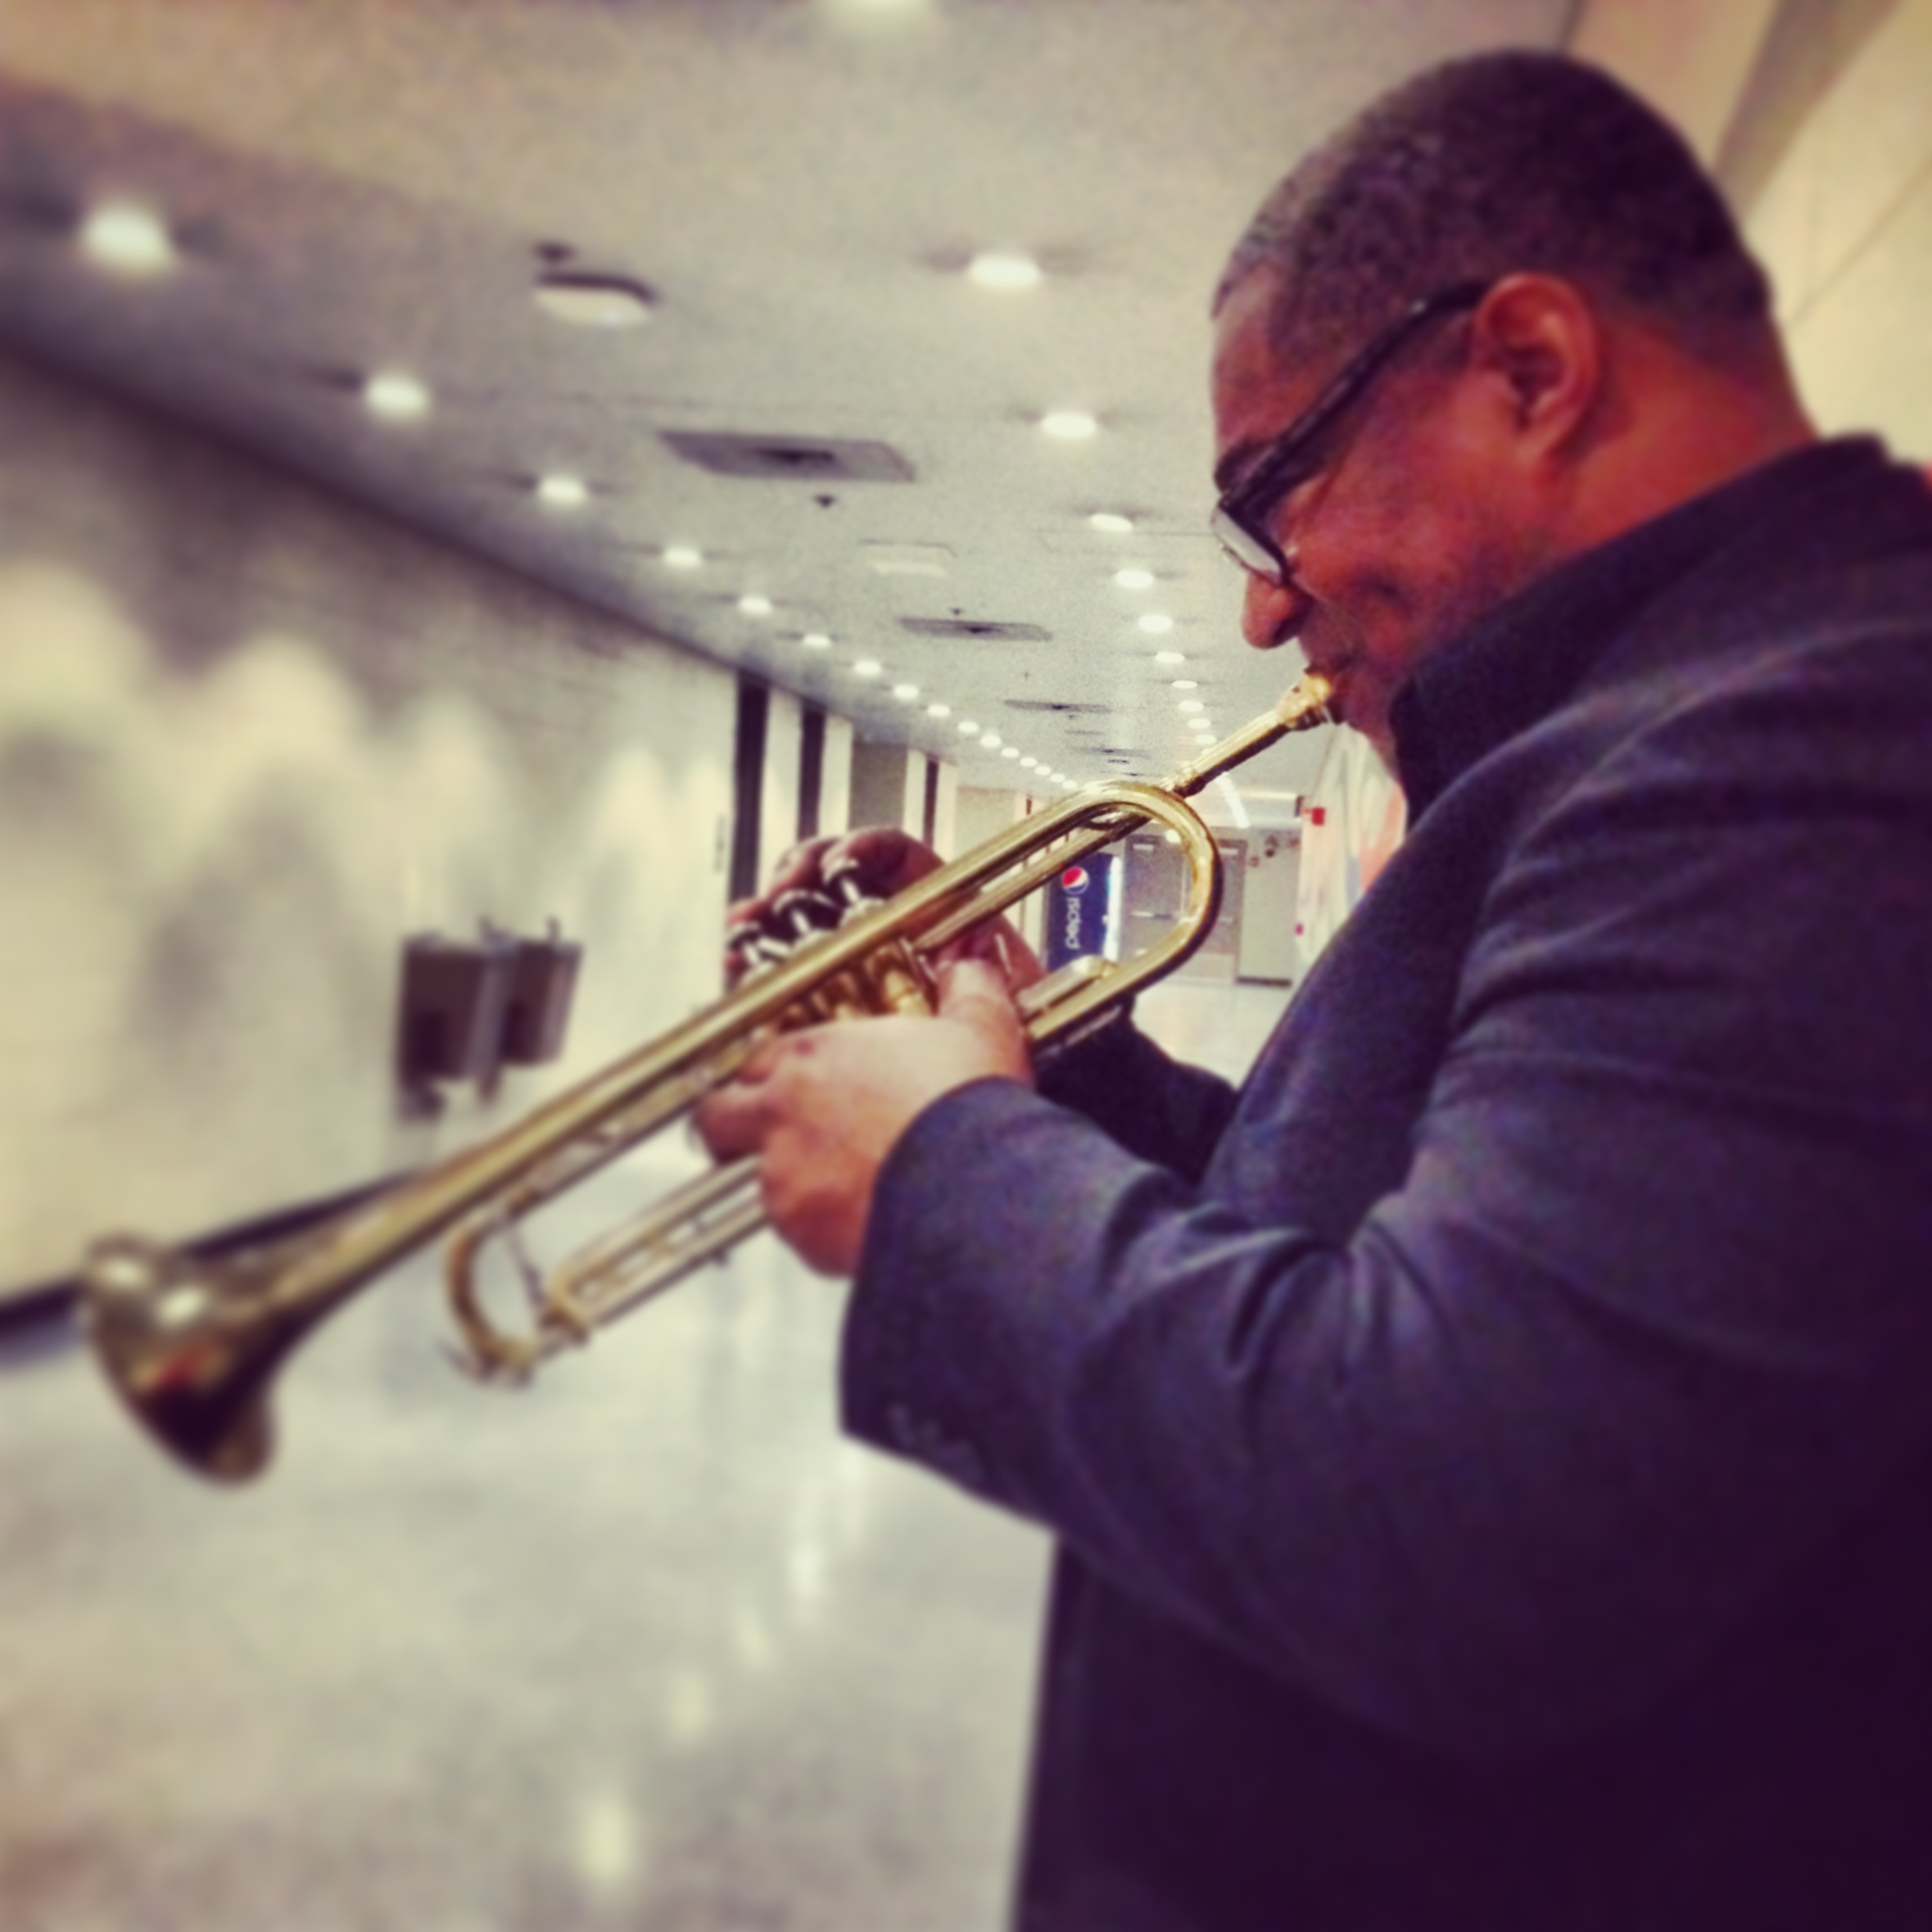 Warming my chops before the show.